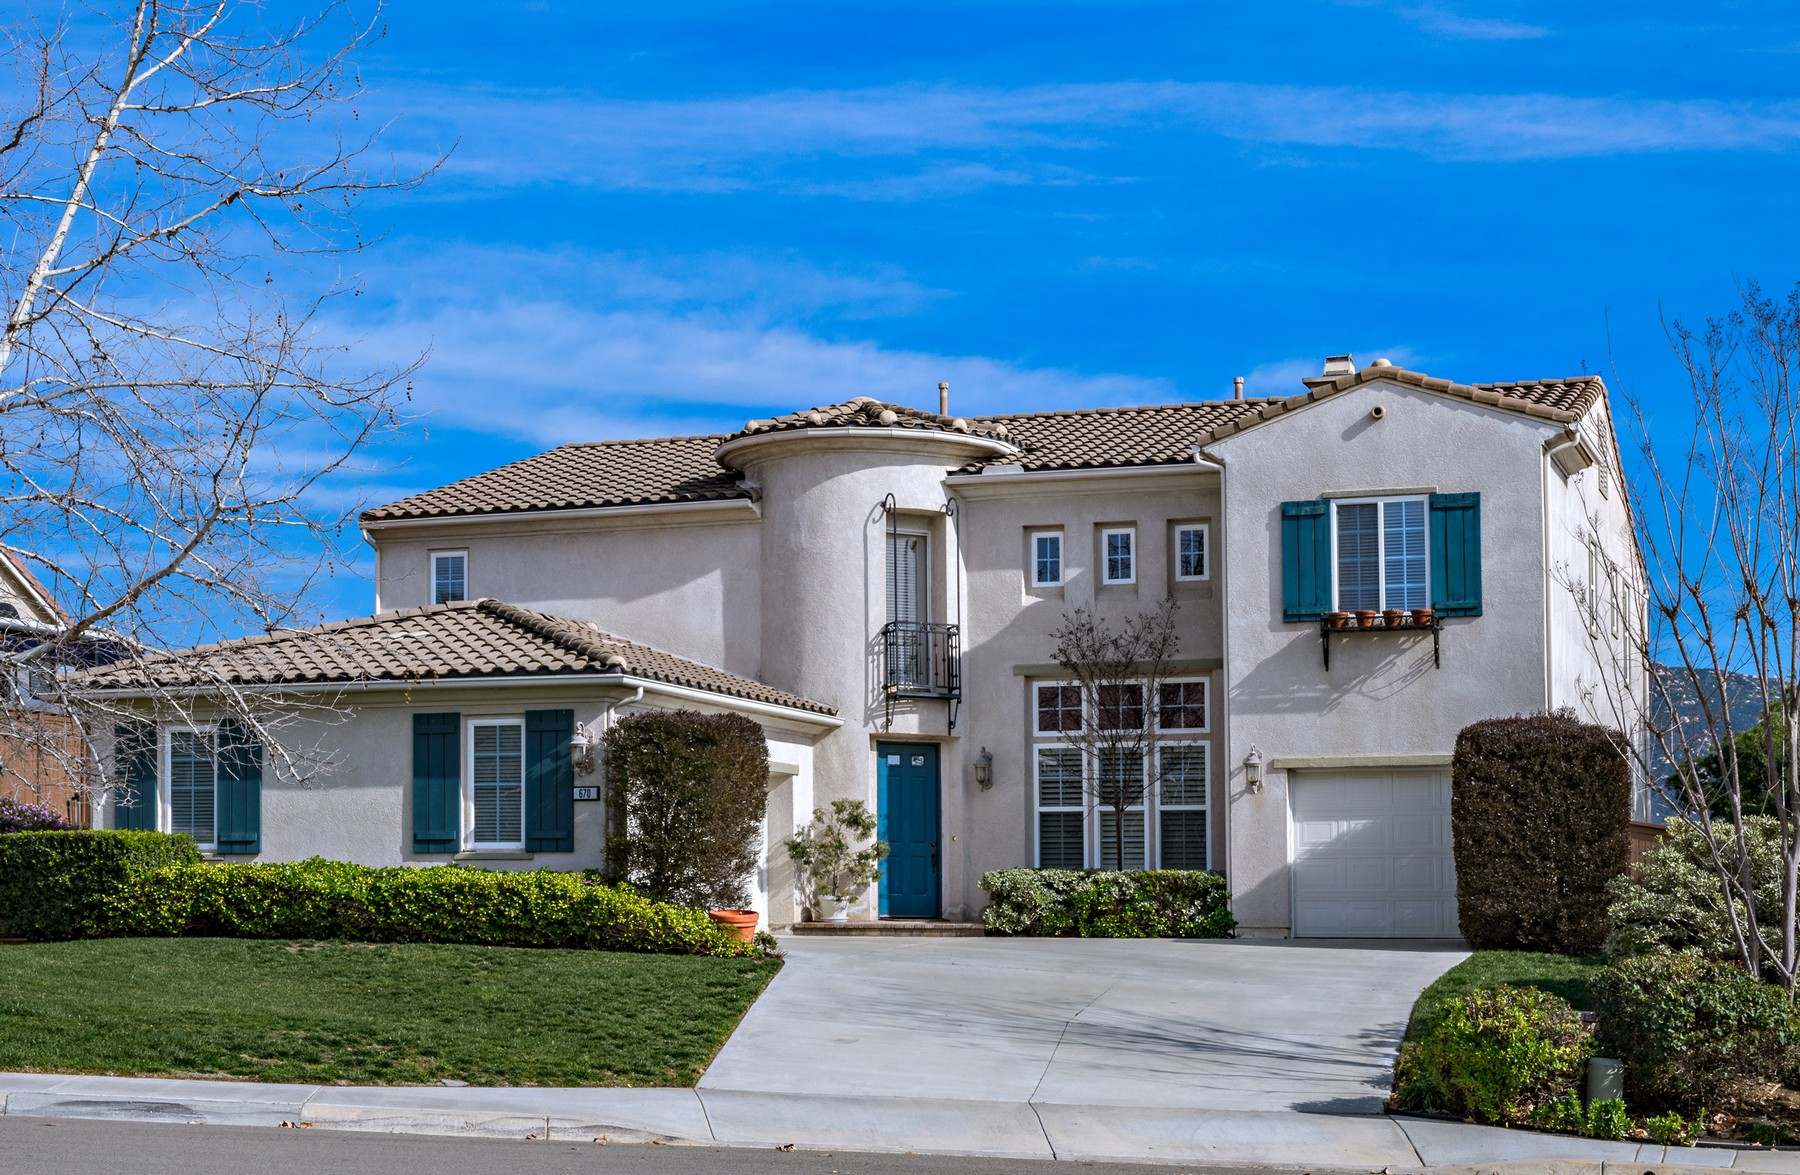 Single Family Home for Sale at 670 South Hidden Trails Road Escondido, California, 92027 United States